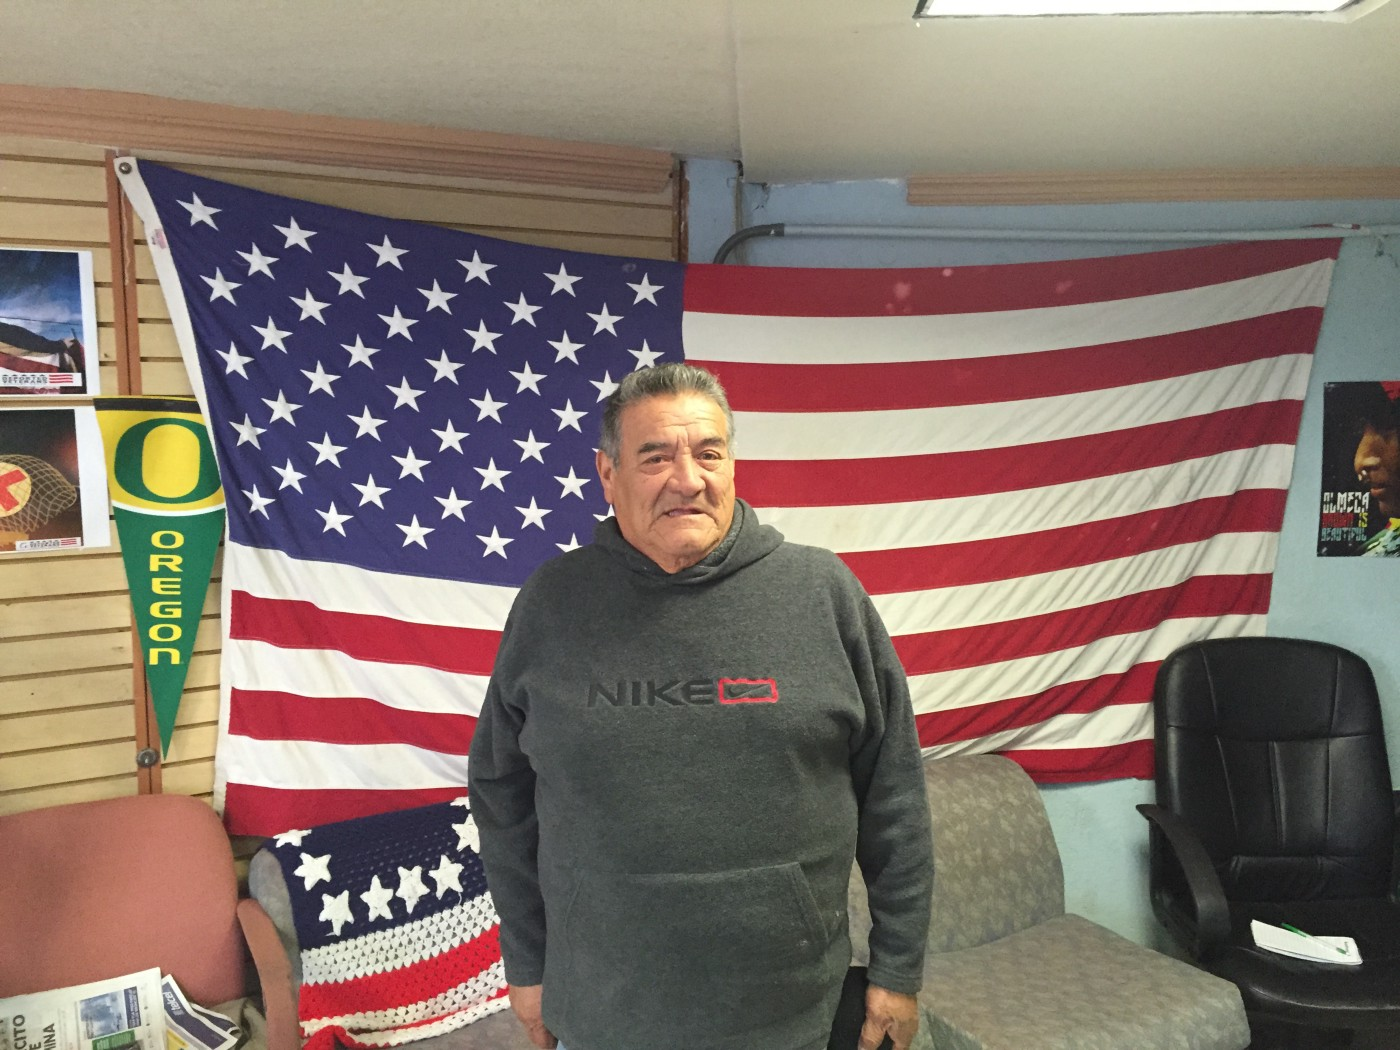 They Served Their Country  Now They're Deported  - CJ Ciaramella